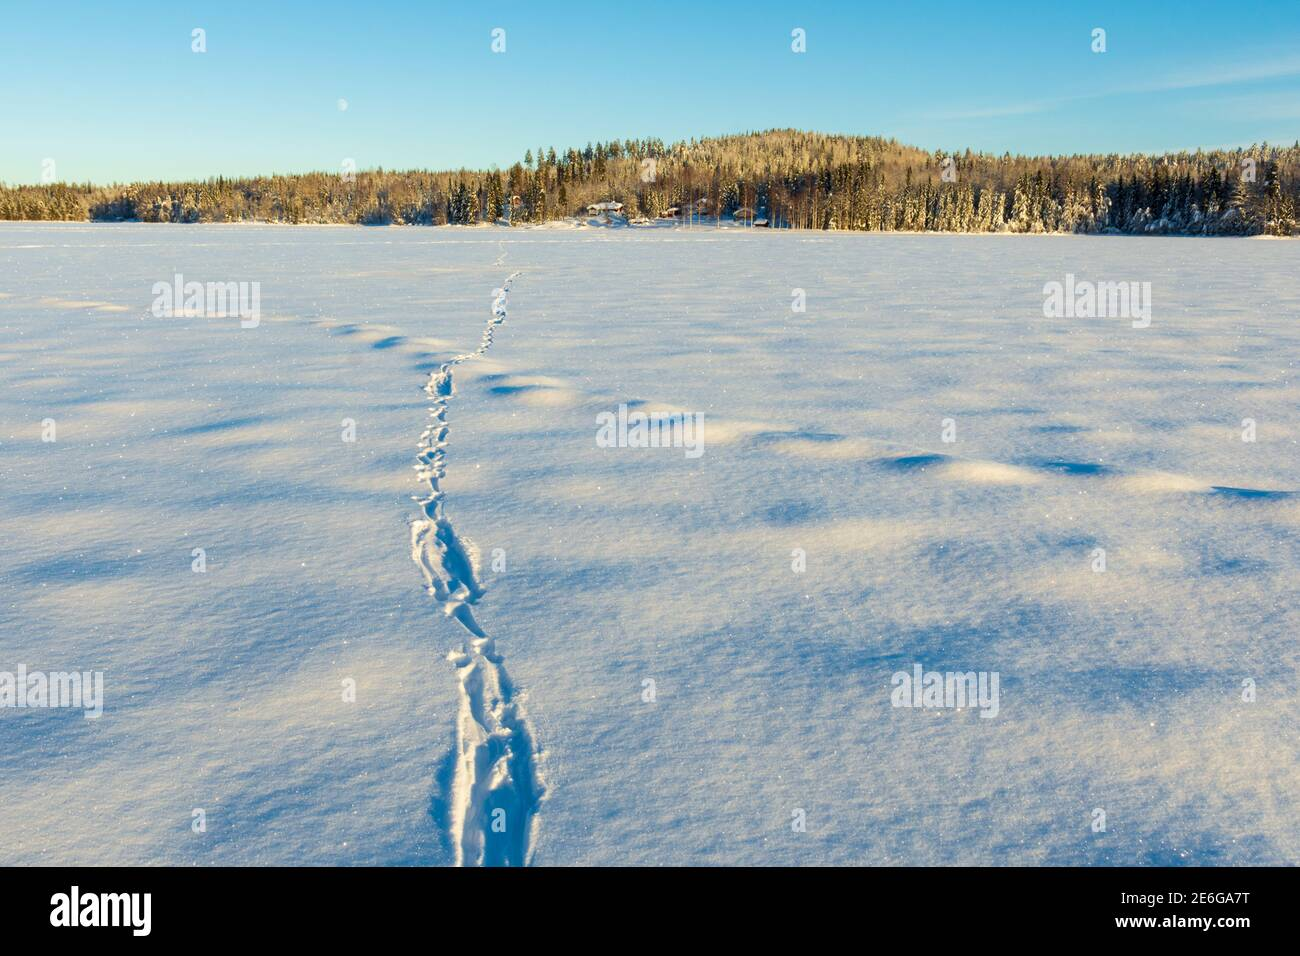 Trace of an otter (Lutra lutra) ower a lake with mountain and a blue sky in background, picture from Vasternorrland Sweden. Stock Photo